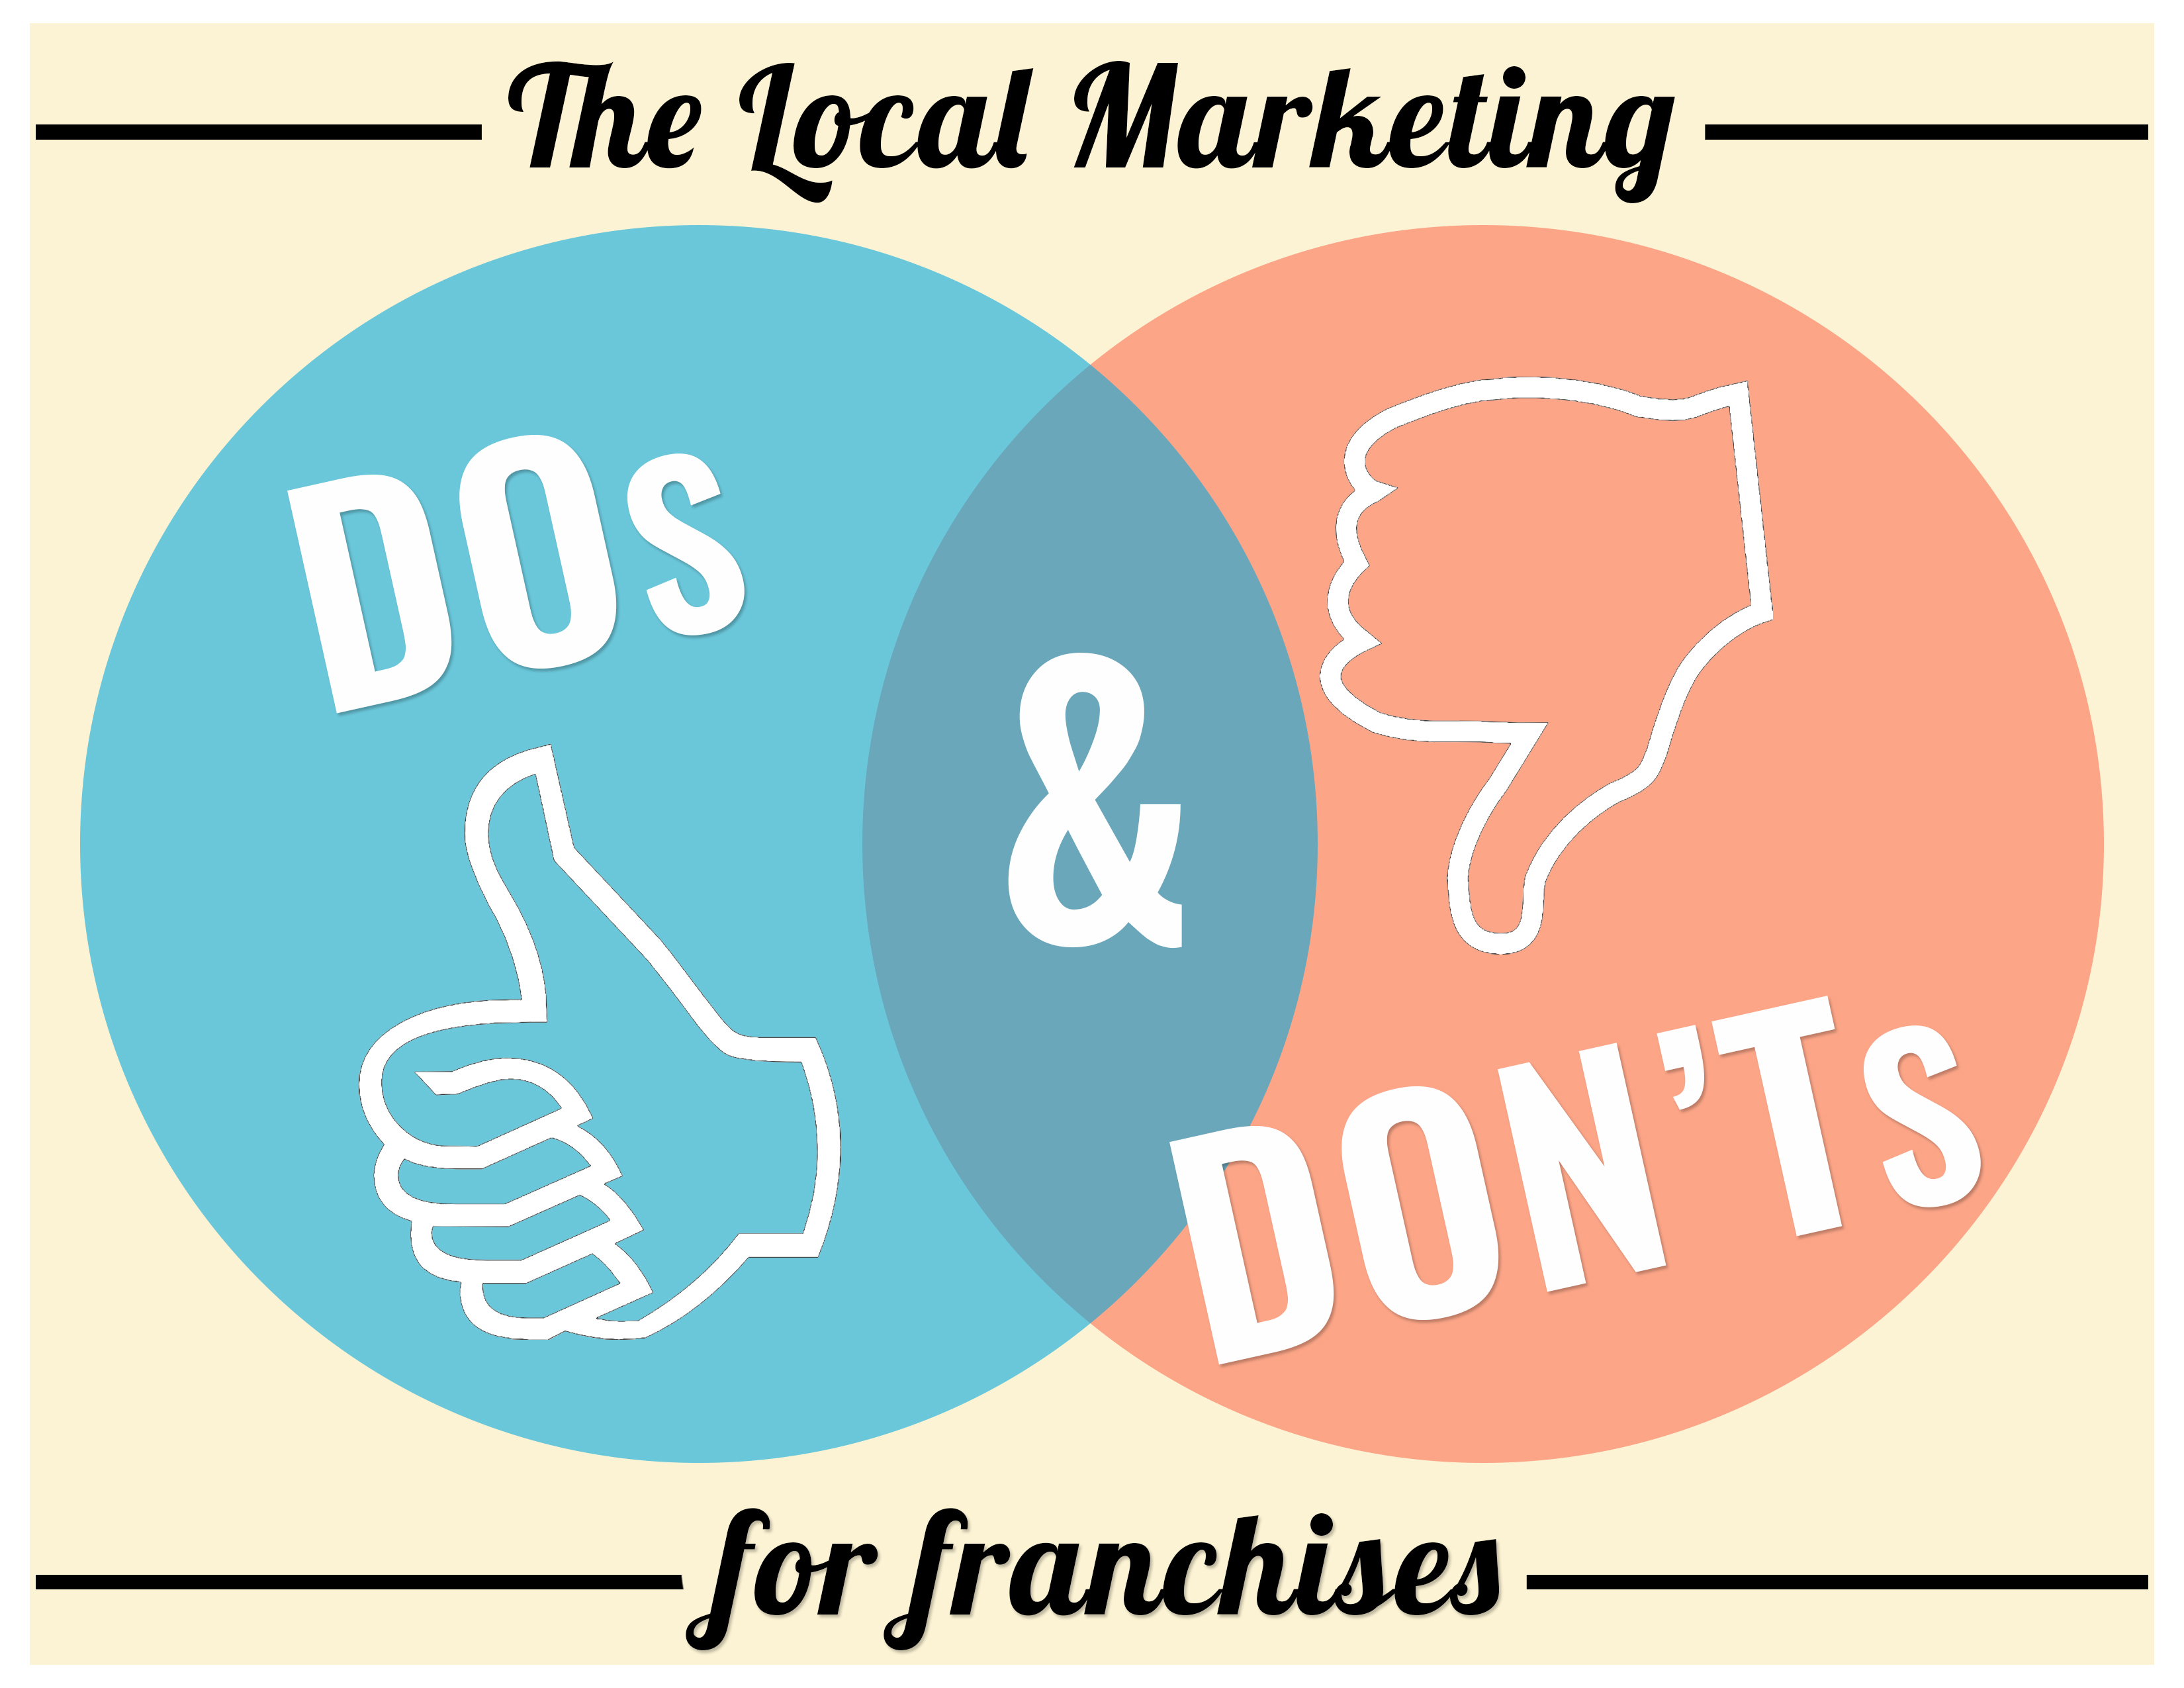 040915_The_Local_Marketing_Dos__Donts_-_For_Franchises_-_1